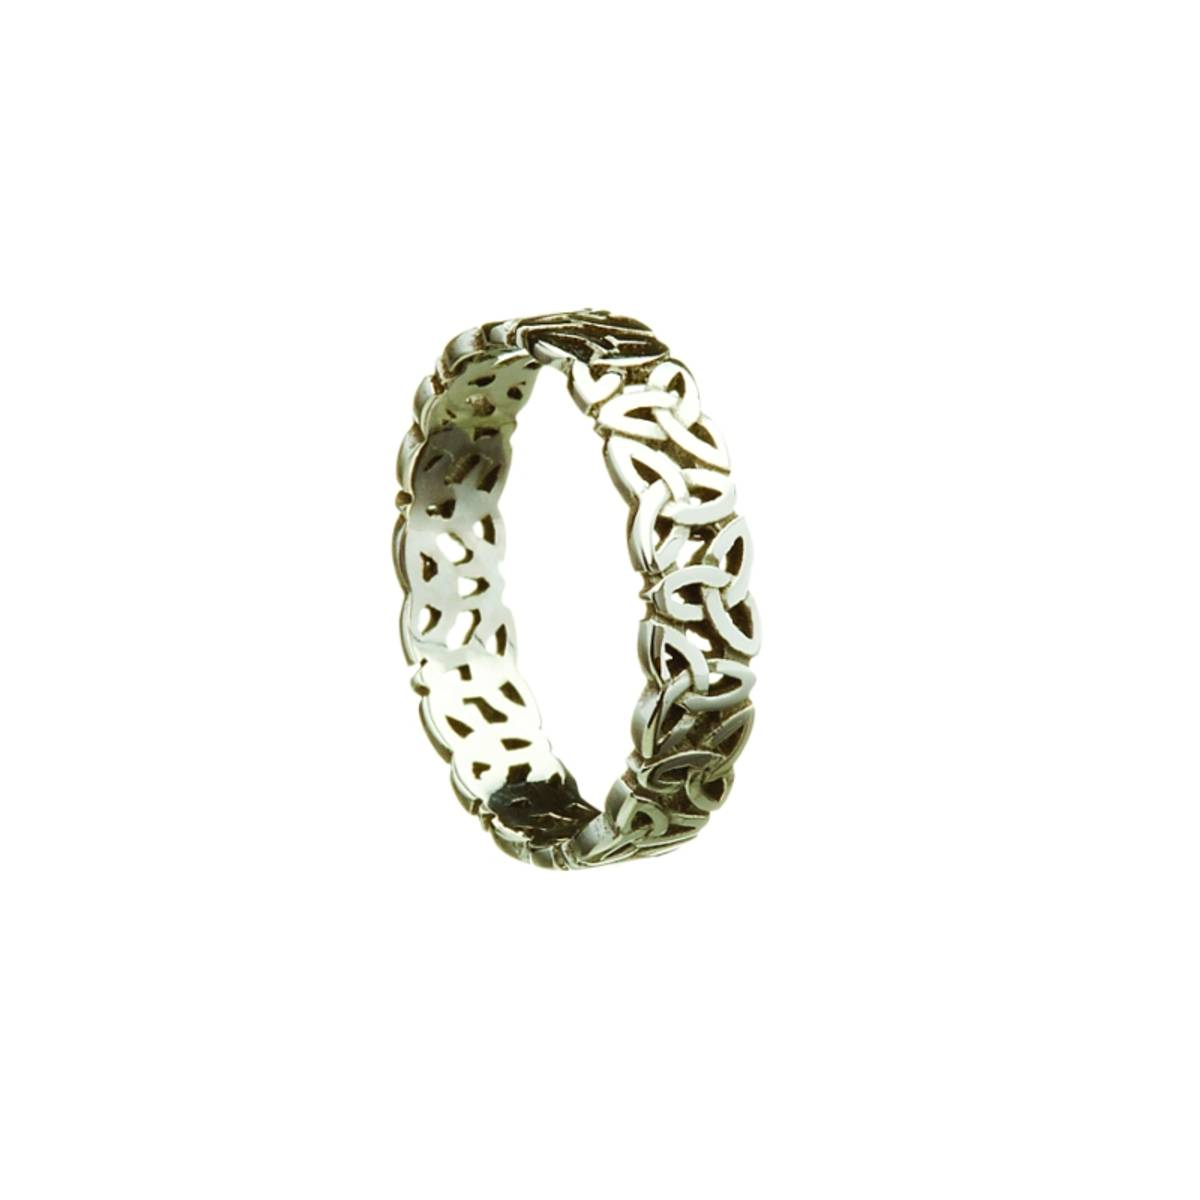 18 carat white gold open trinity lady's ring